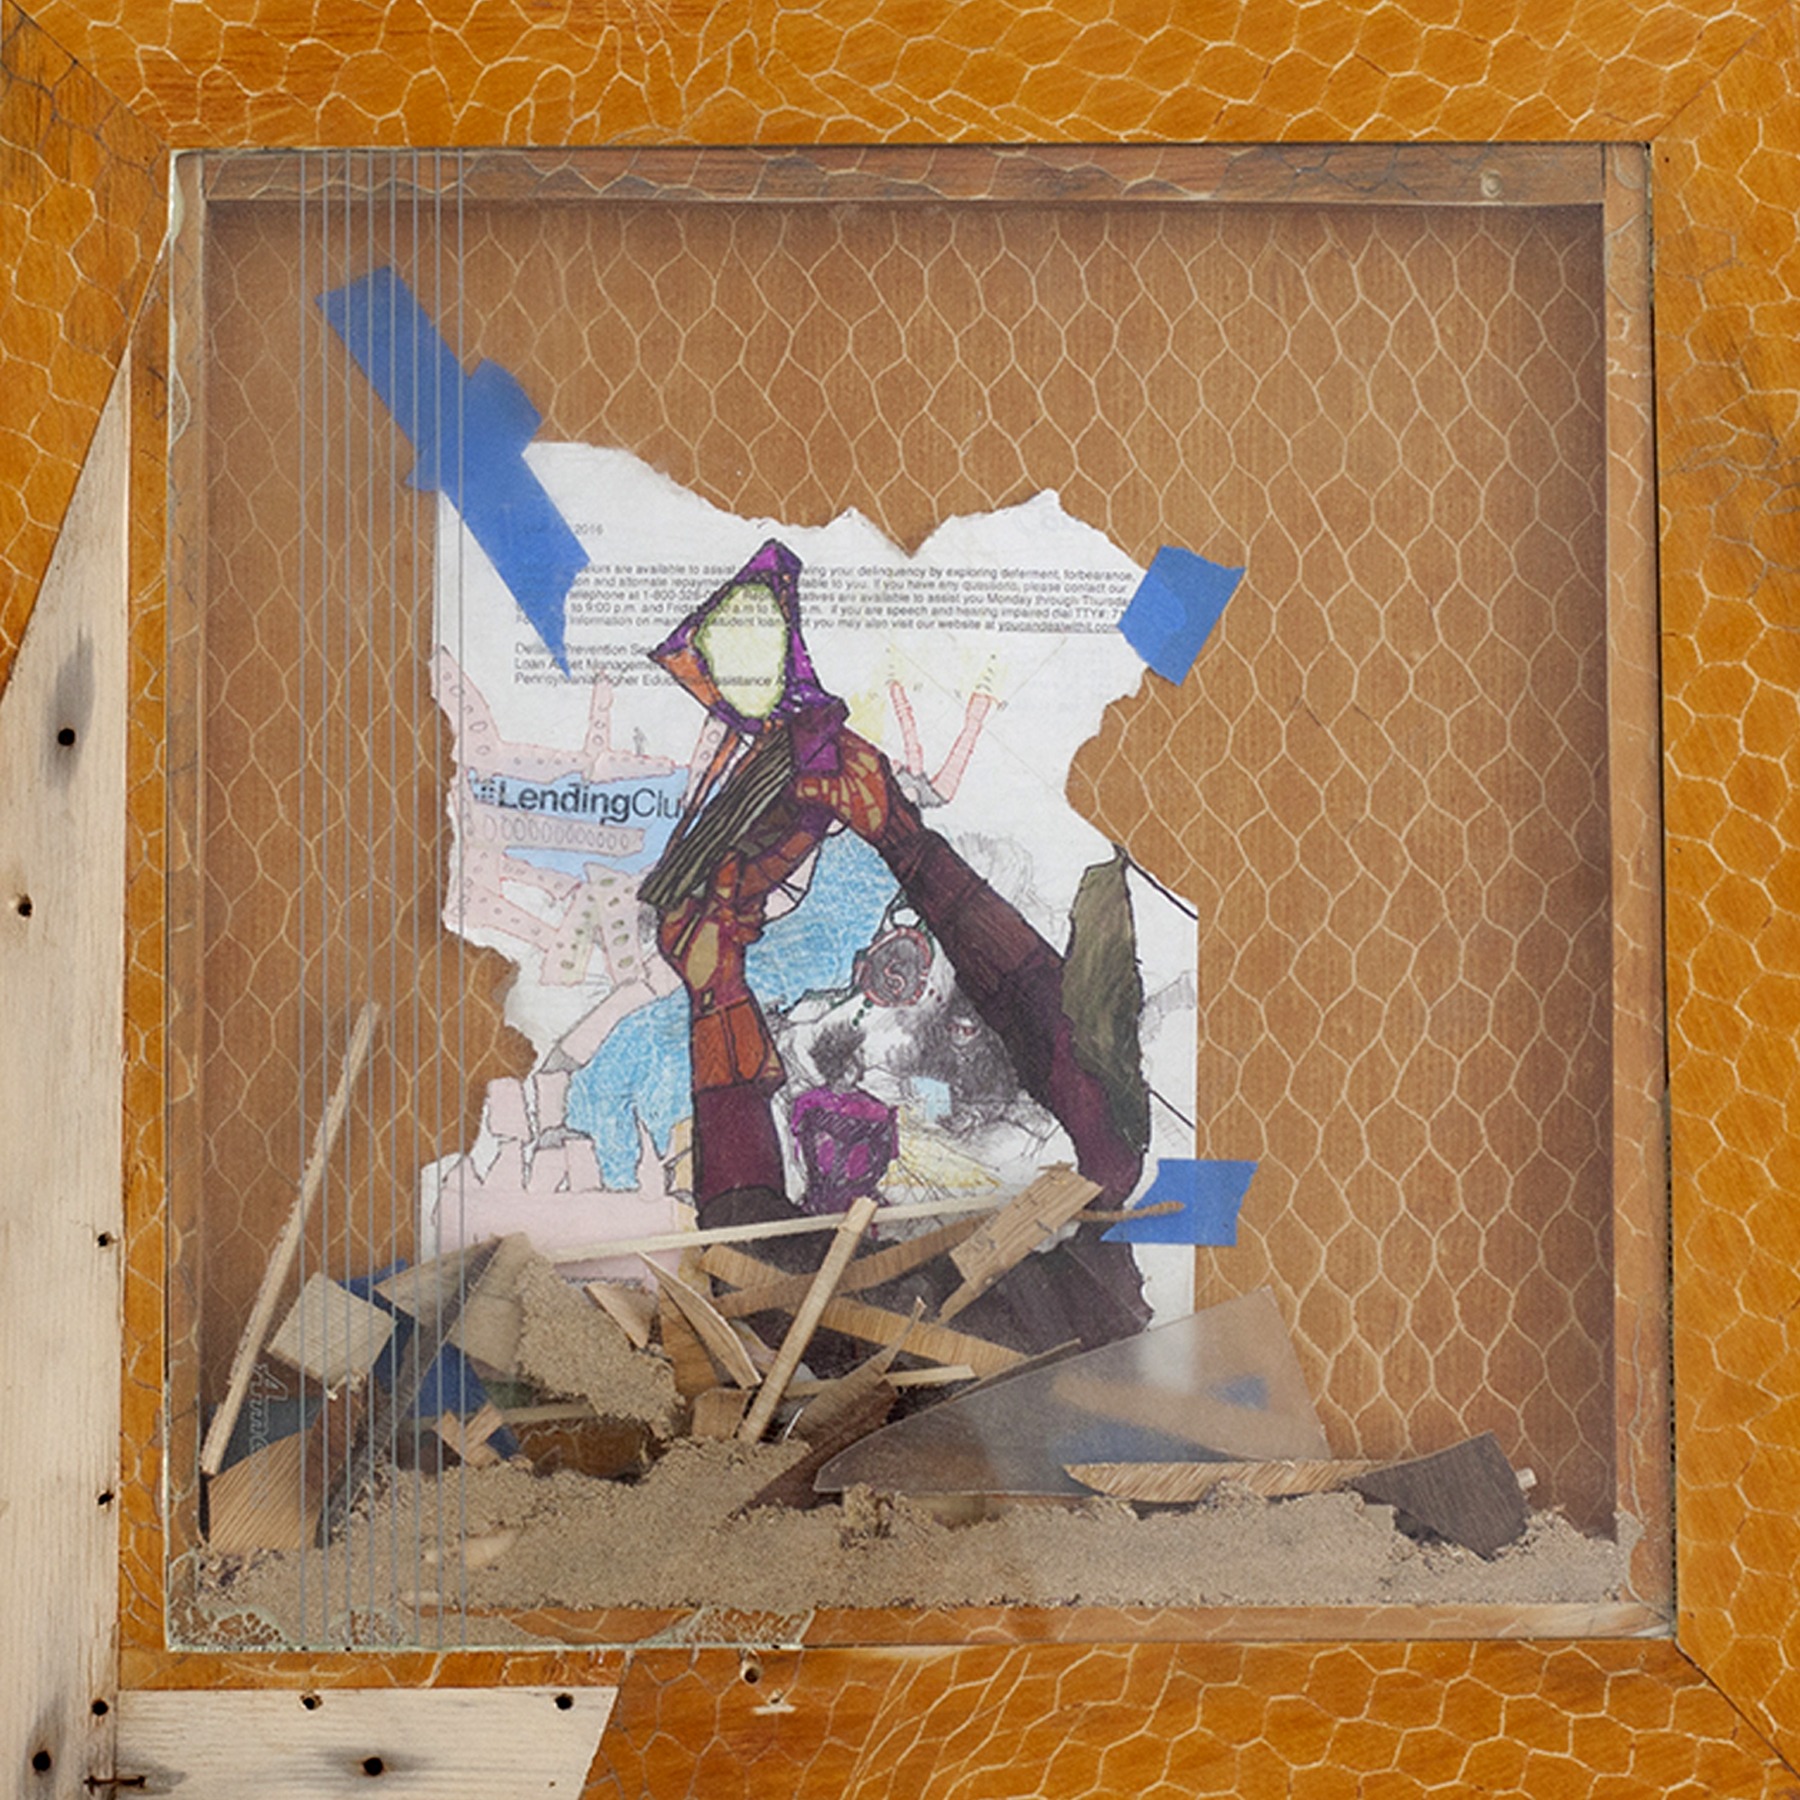 Debt Consolidation: Sedimentation Series, 20 x 20 inches / 50.8 x 50.8 cm, frame and dust from Chicago public school materials, 2017